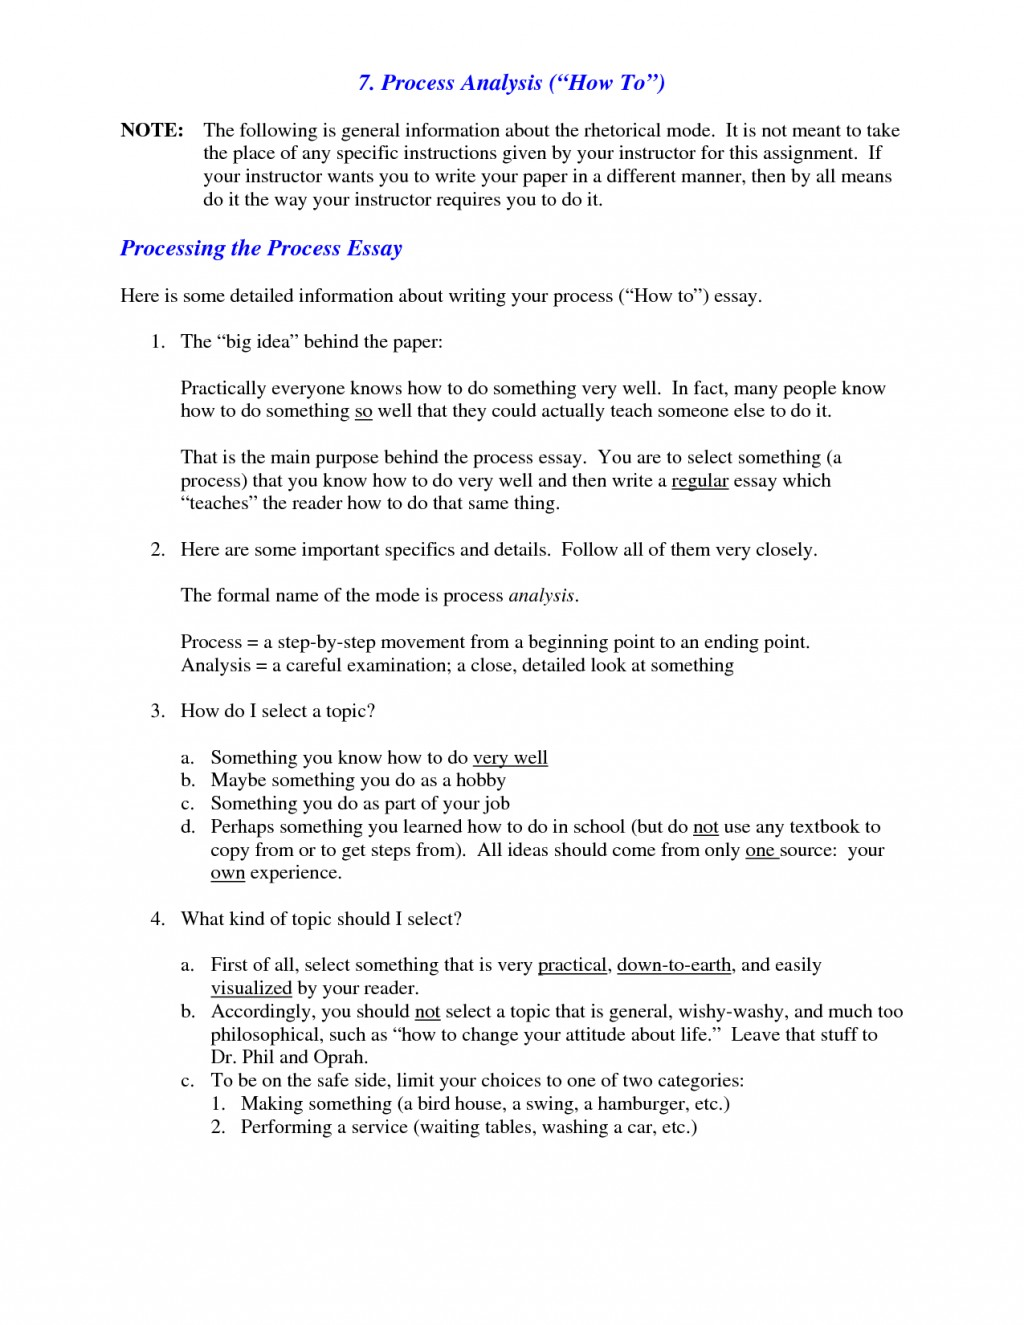 004 Essay Example What Is Process Analysis Of L How To Top Write A Ielts Thesis Statement For Large